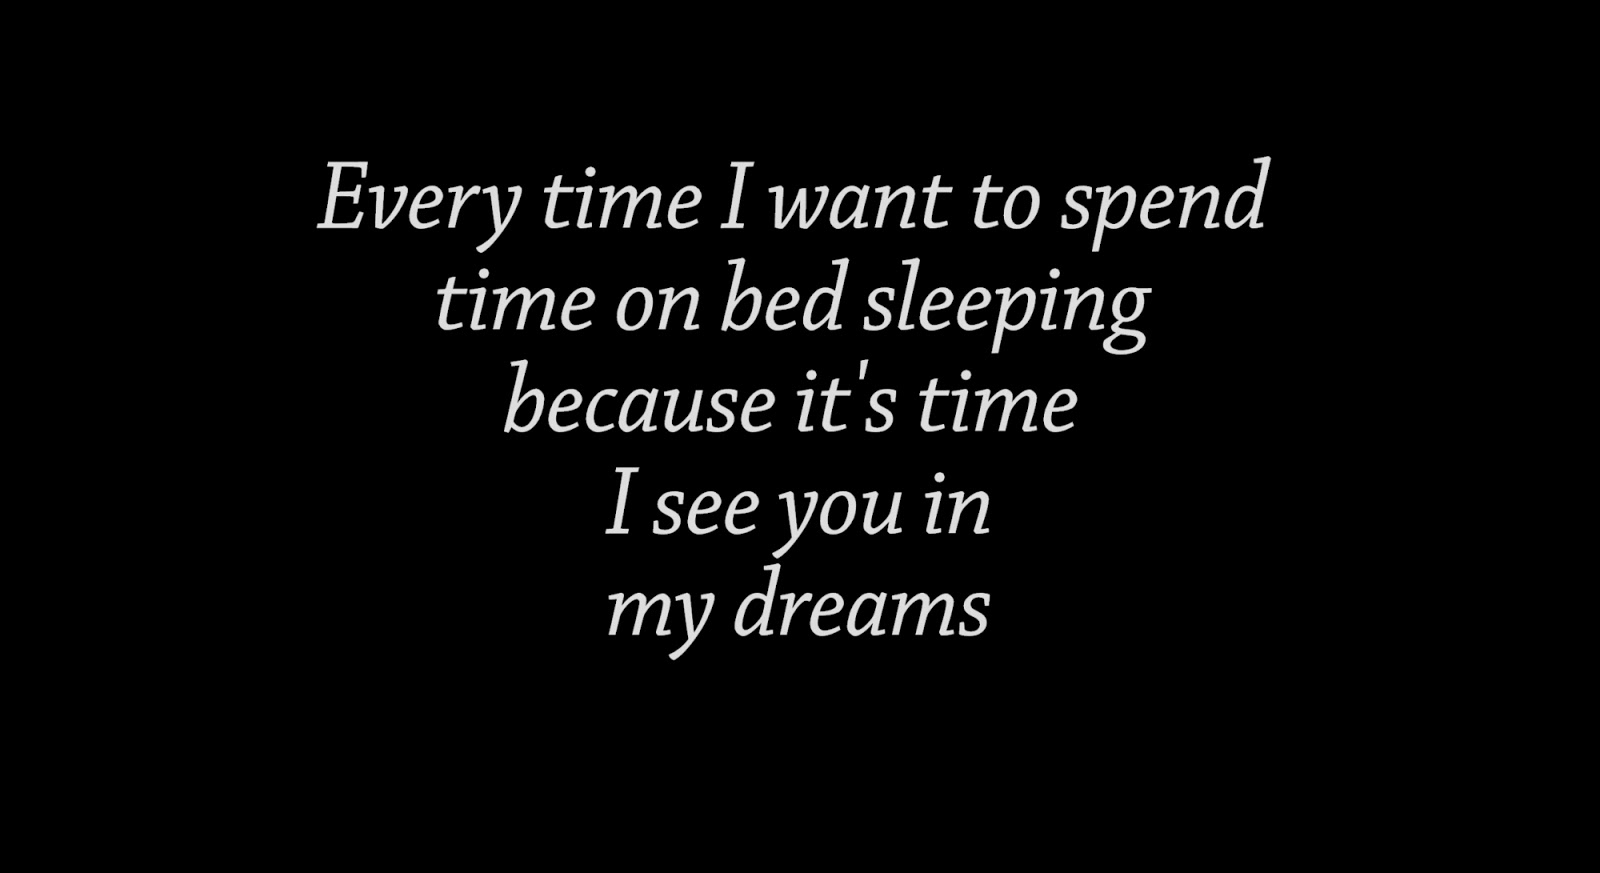 Every time I want to spend time on bed sleeping because it's time I see you in my dreams